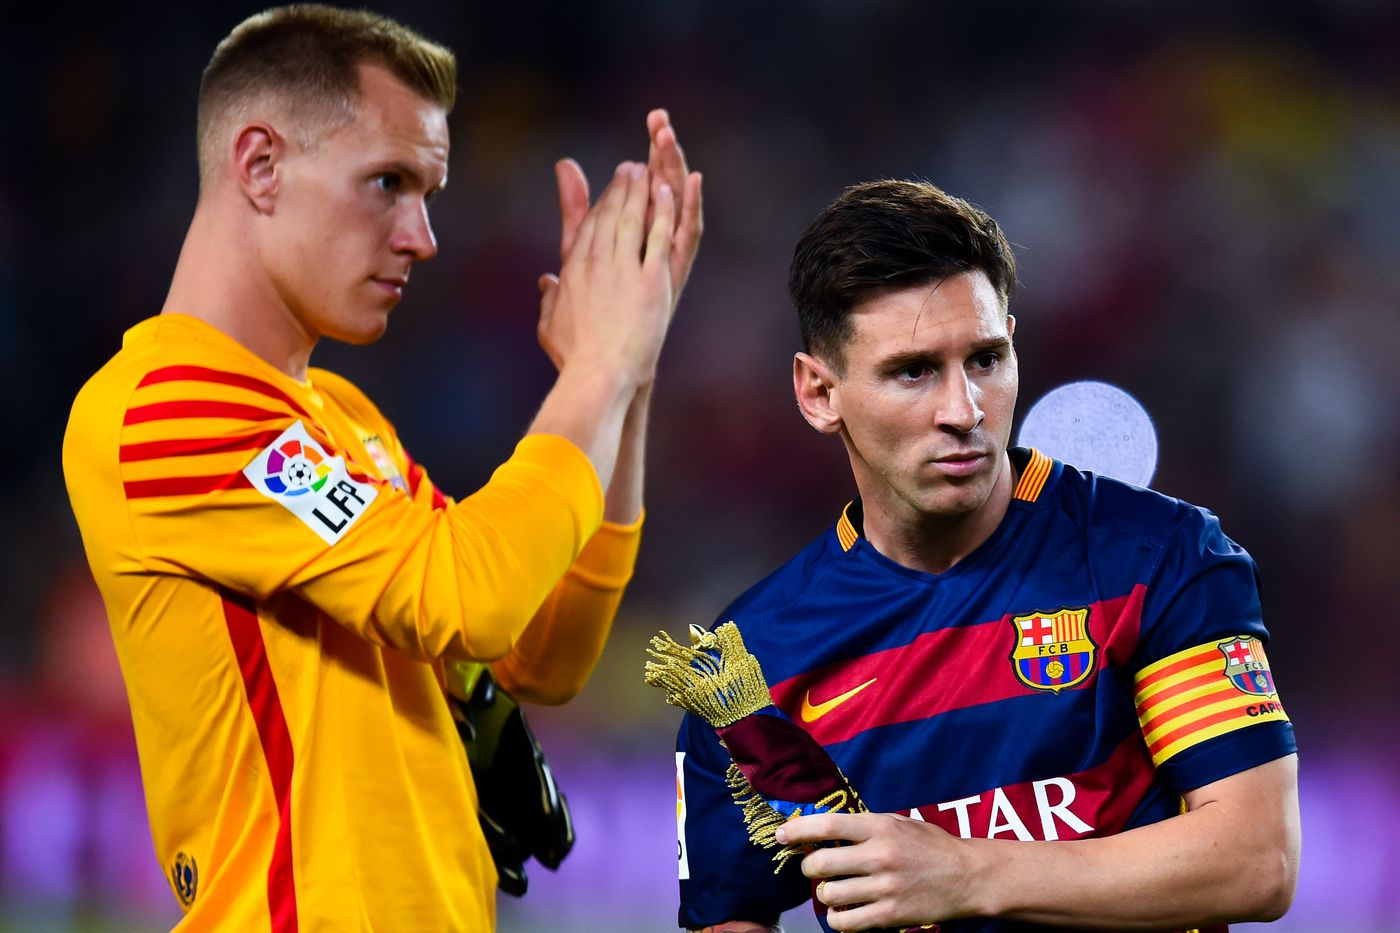 Marc-André ter Stegen: Every Player Can Learn From Lionel Messi's Mental Strength